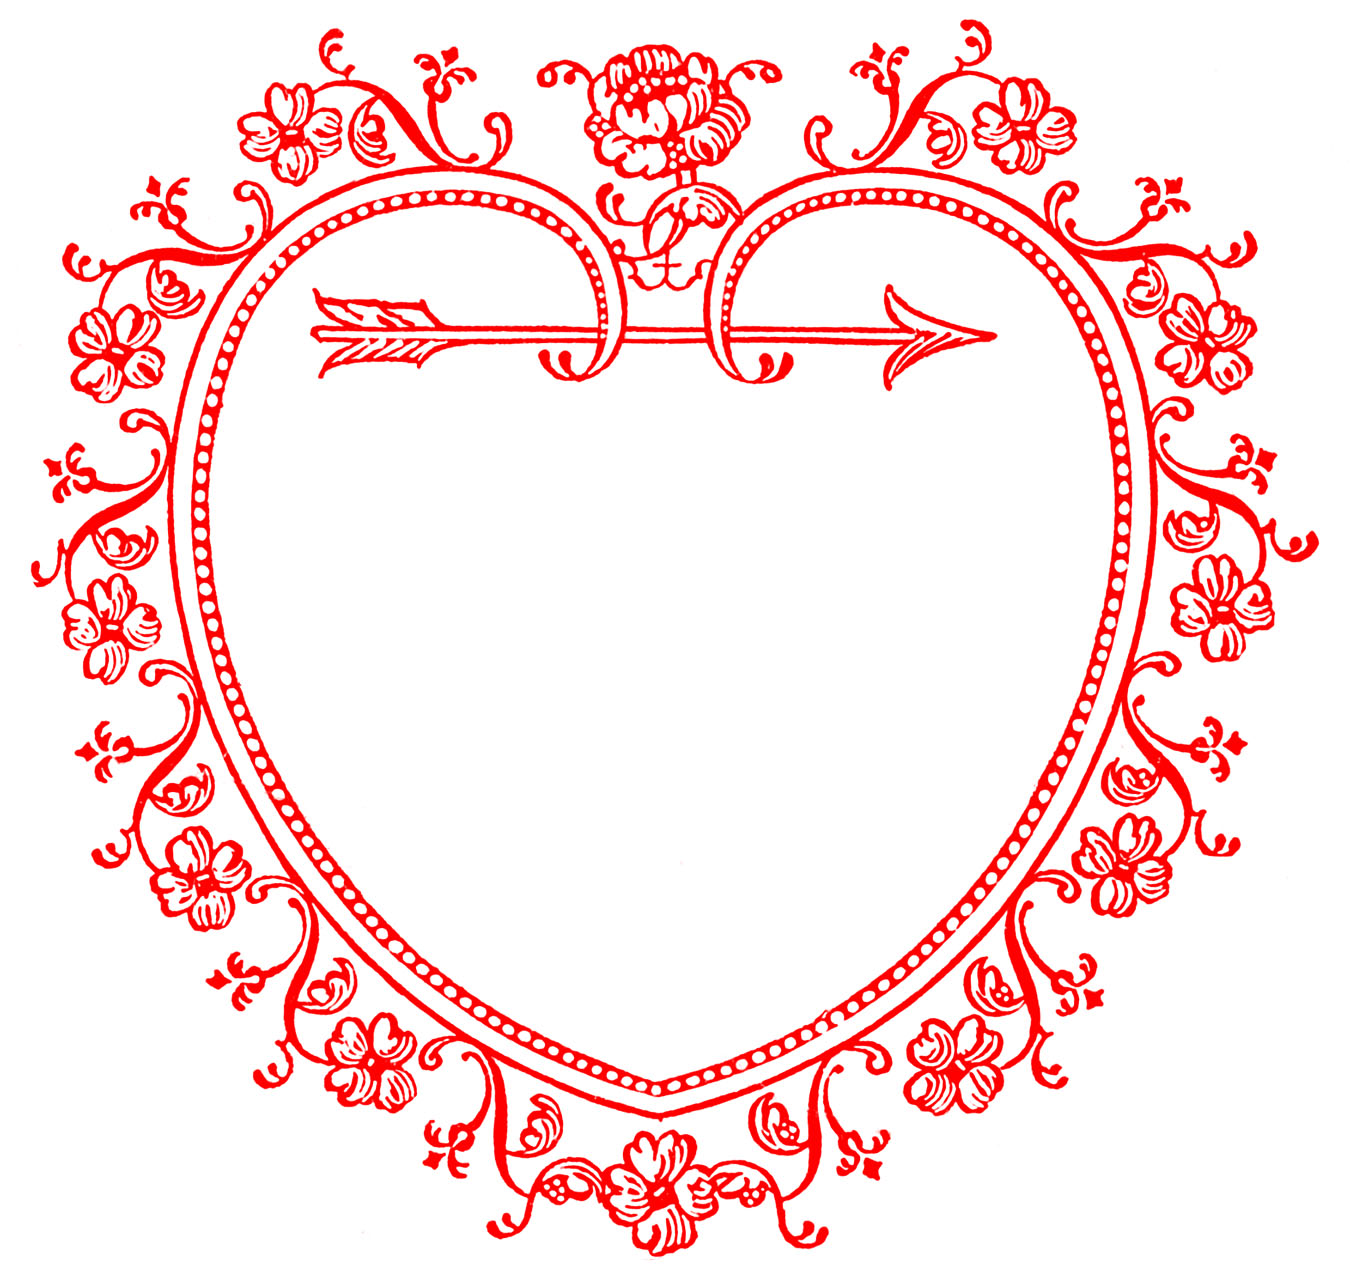 10 Valentine Heart Shape Images And Printables The Graphics Fairy